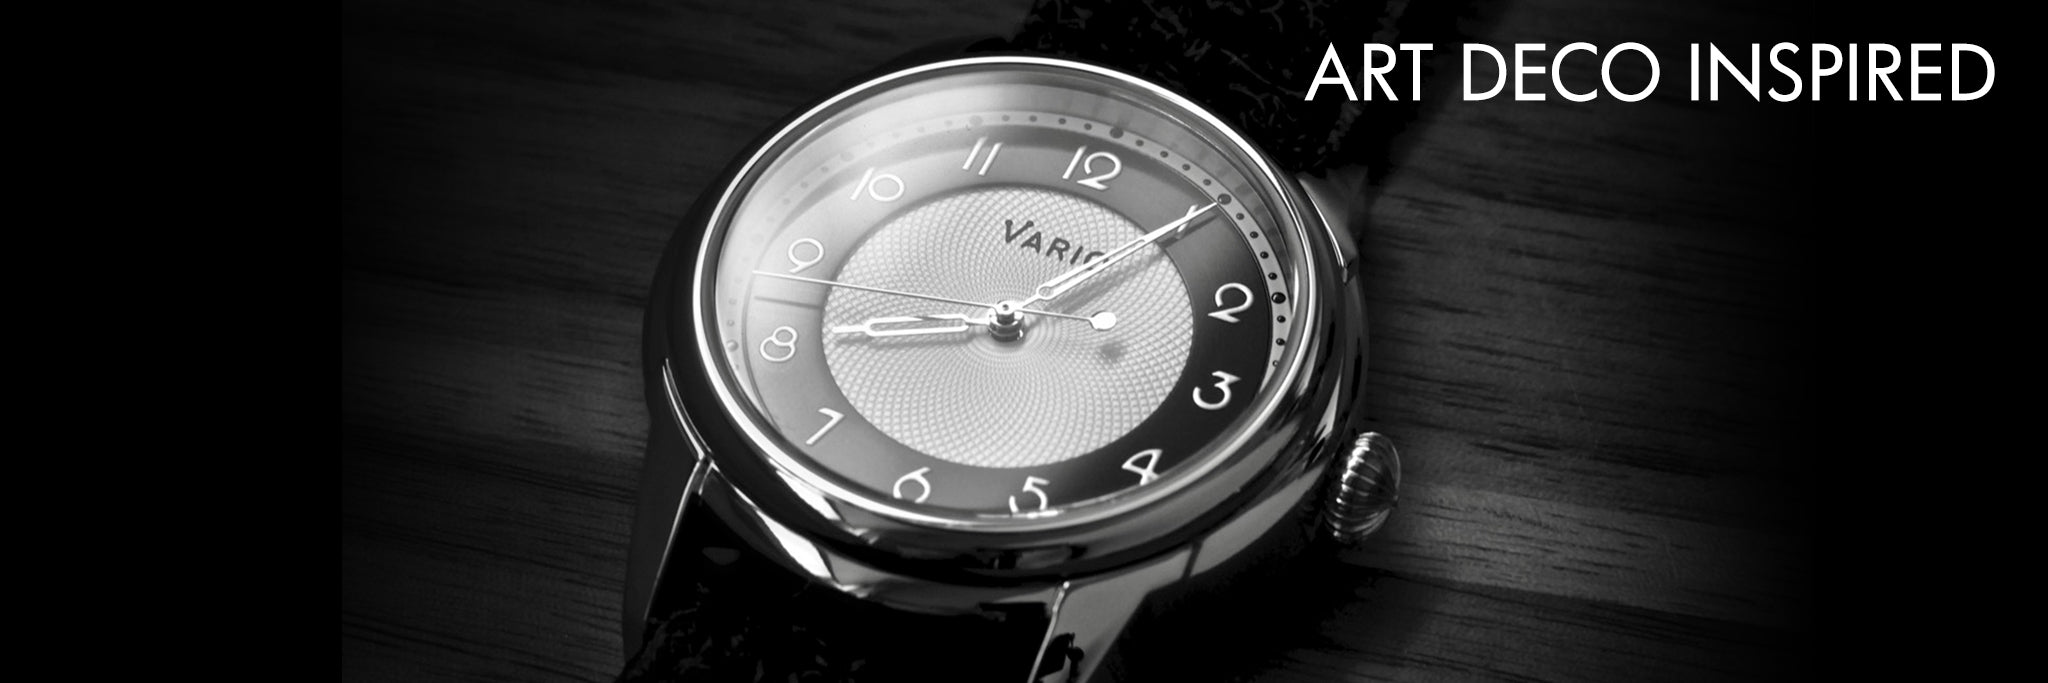 vario empire art deco watch